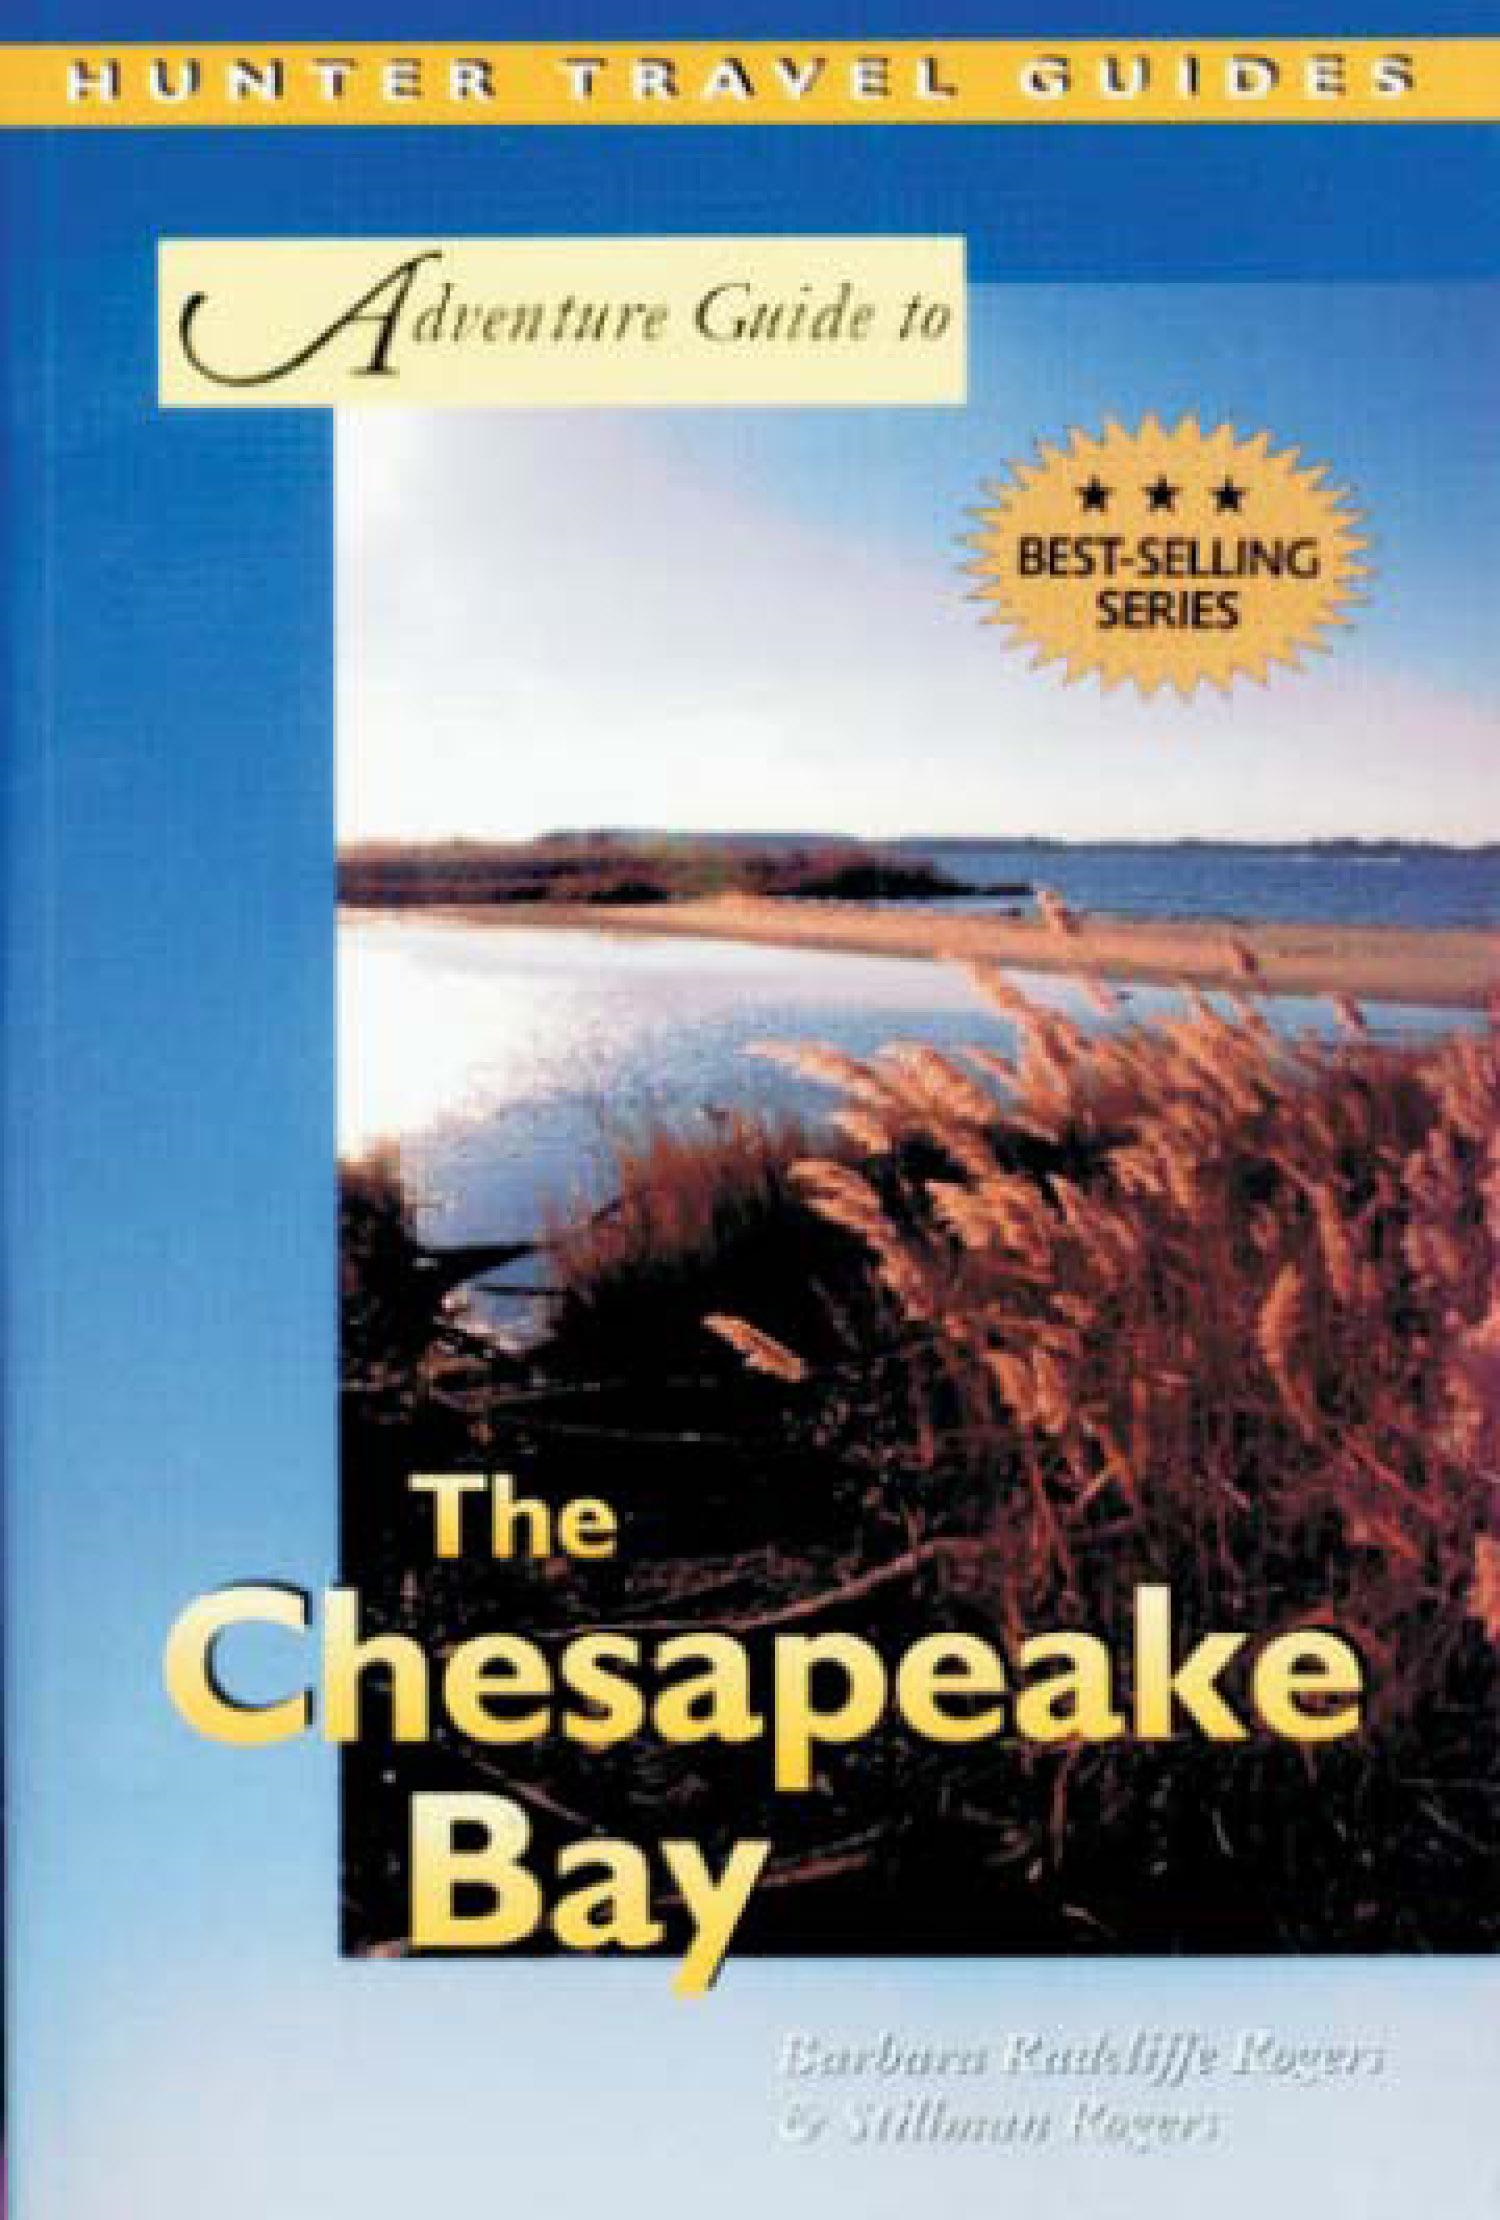 Chesapeake Bay Adventure Guide